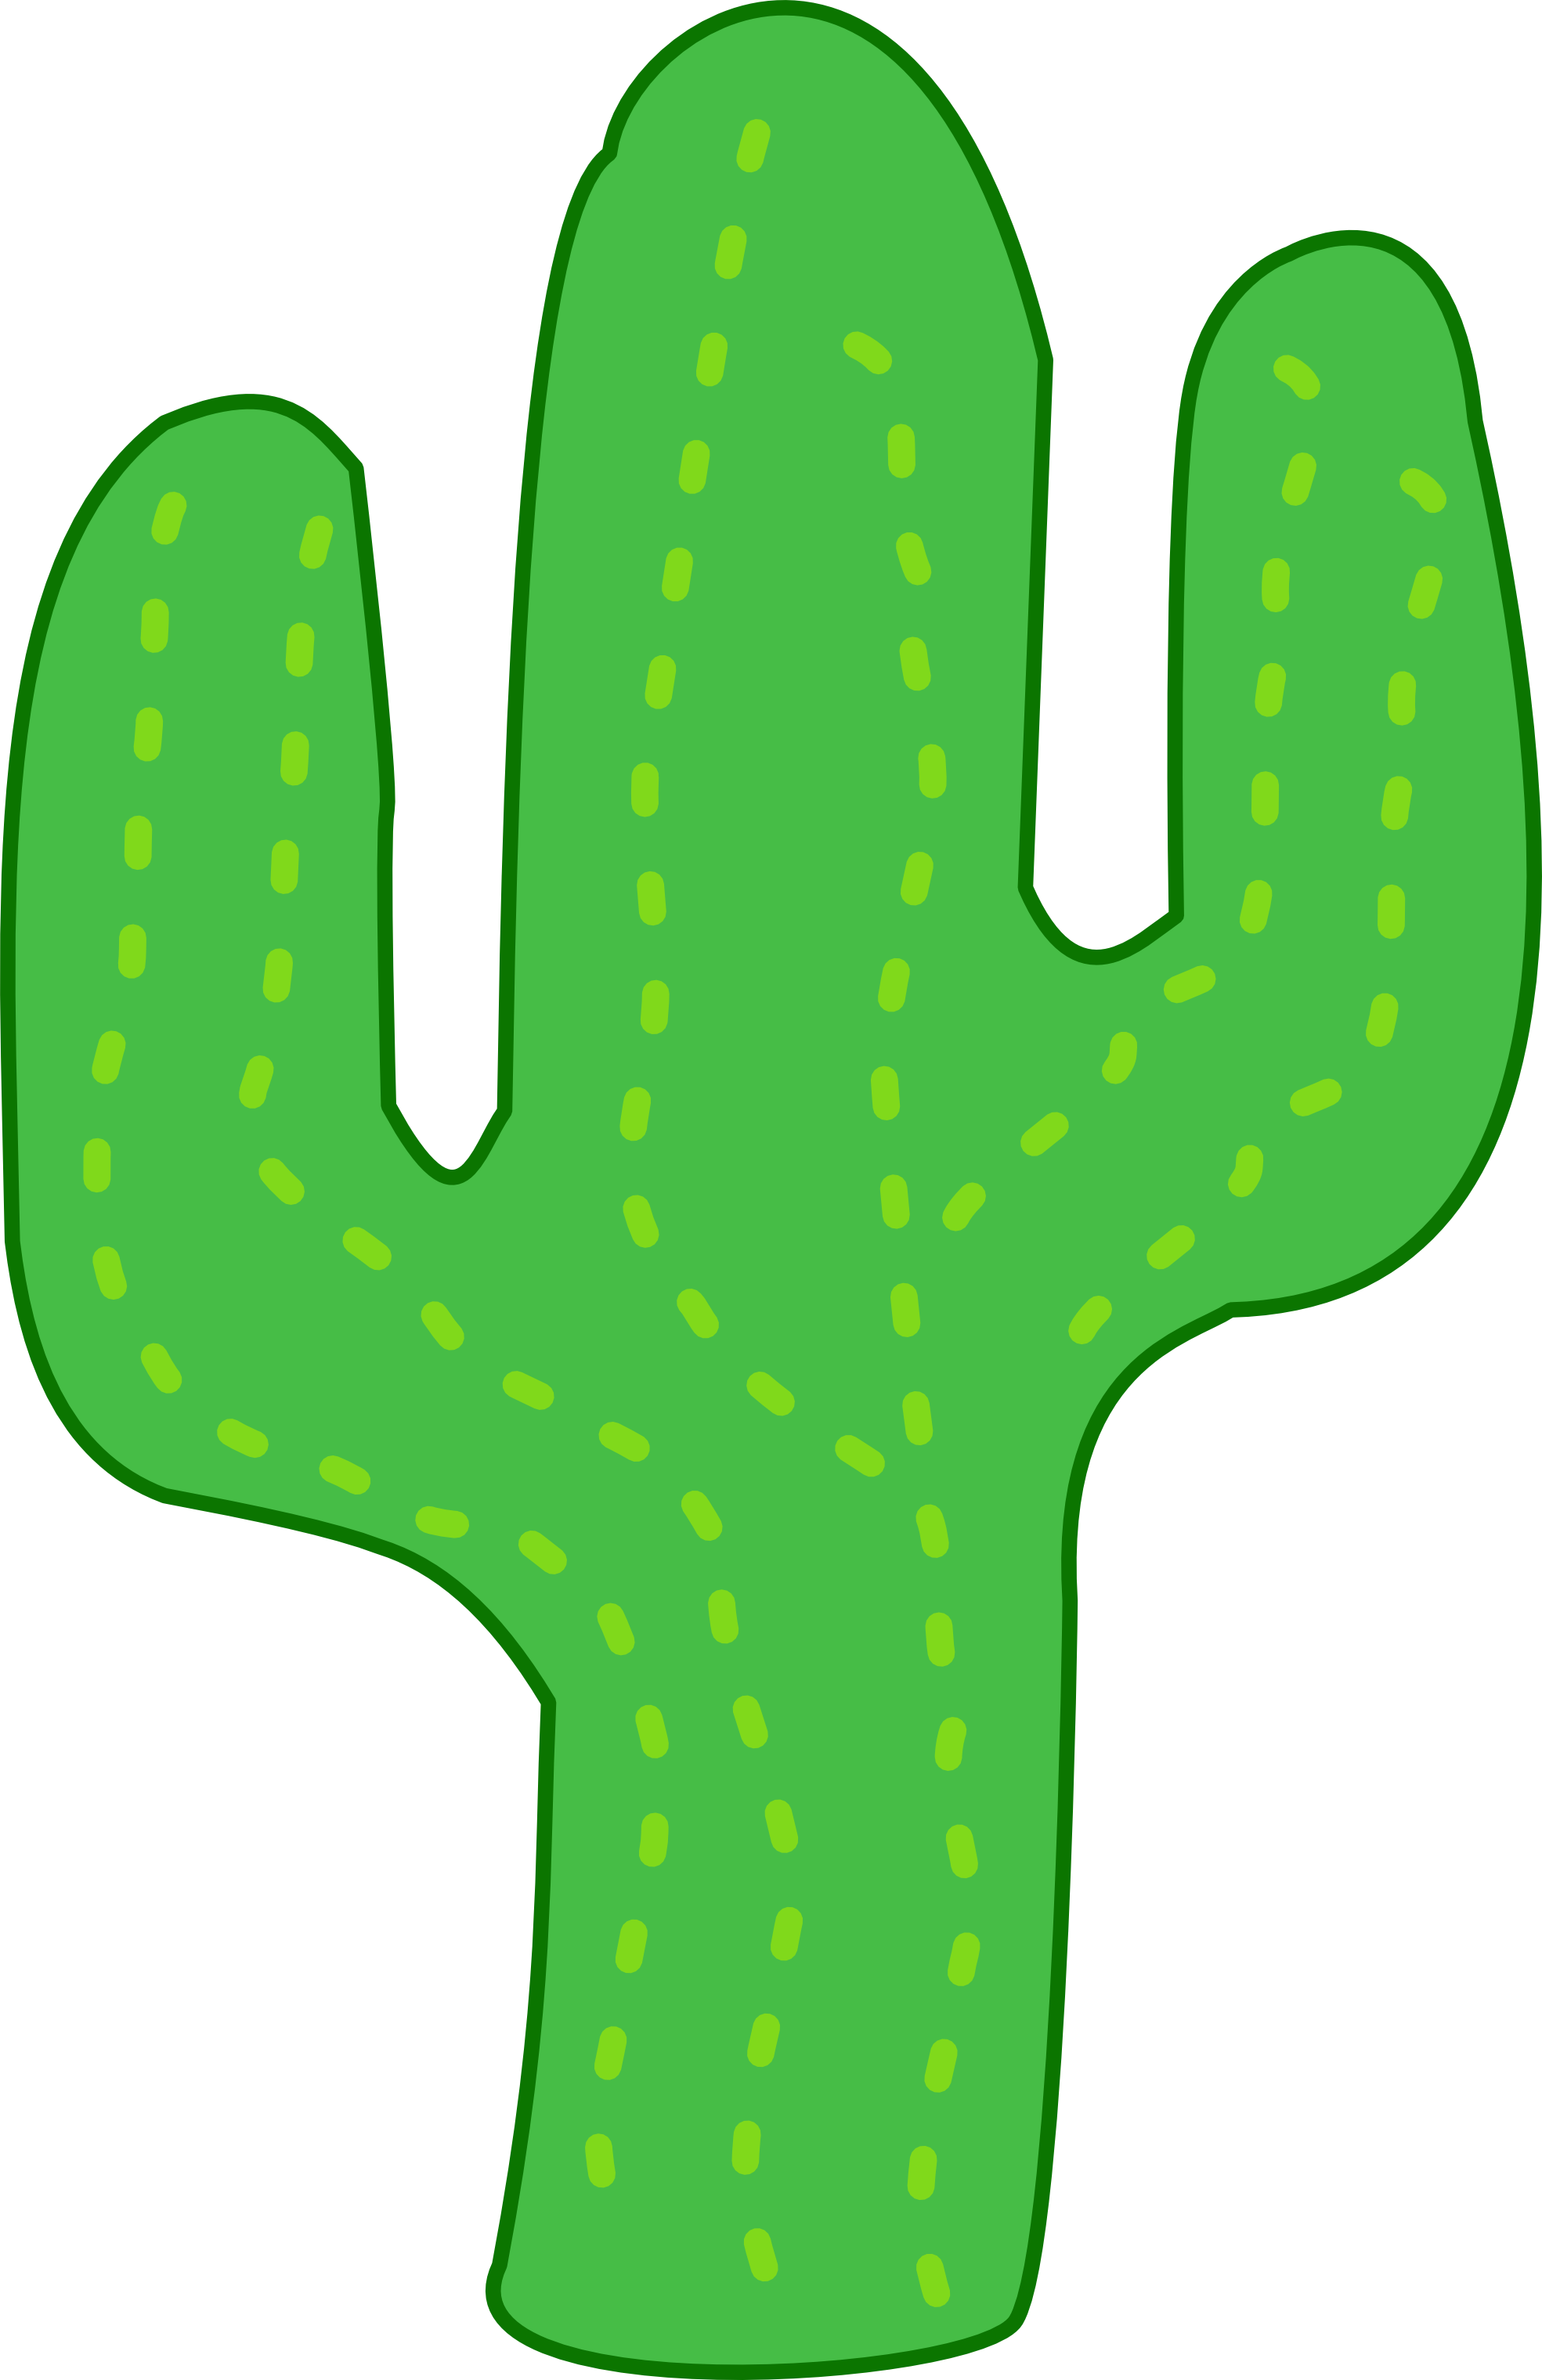 Cactus with flower clipart image Cactus Clipart at GetDrawings.com | Free for personal use Cactus ... image